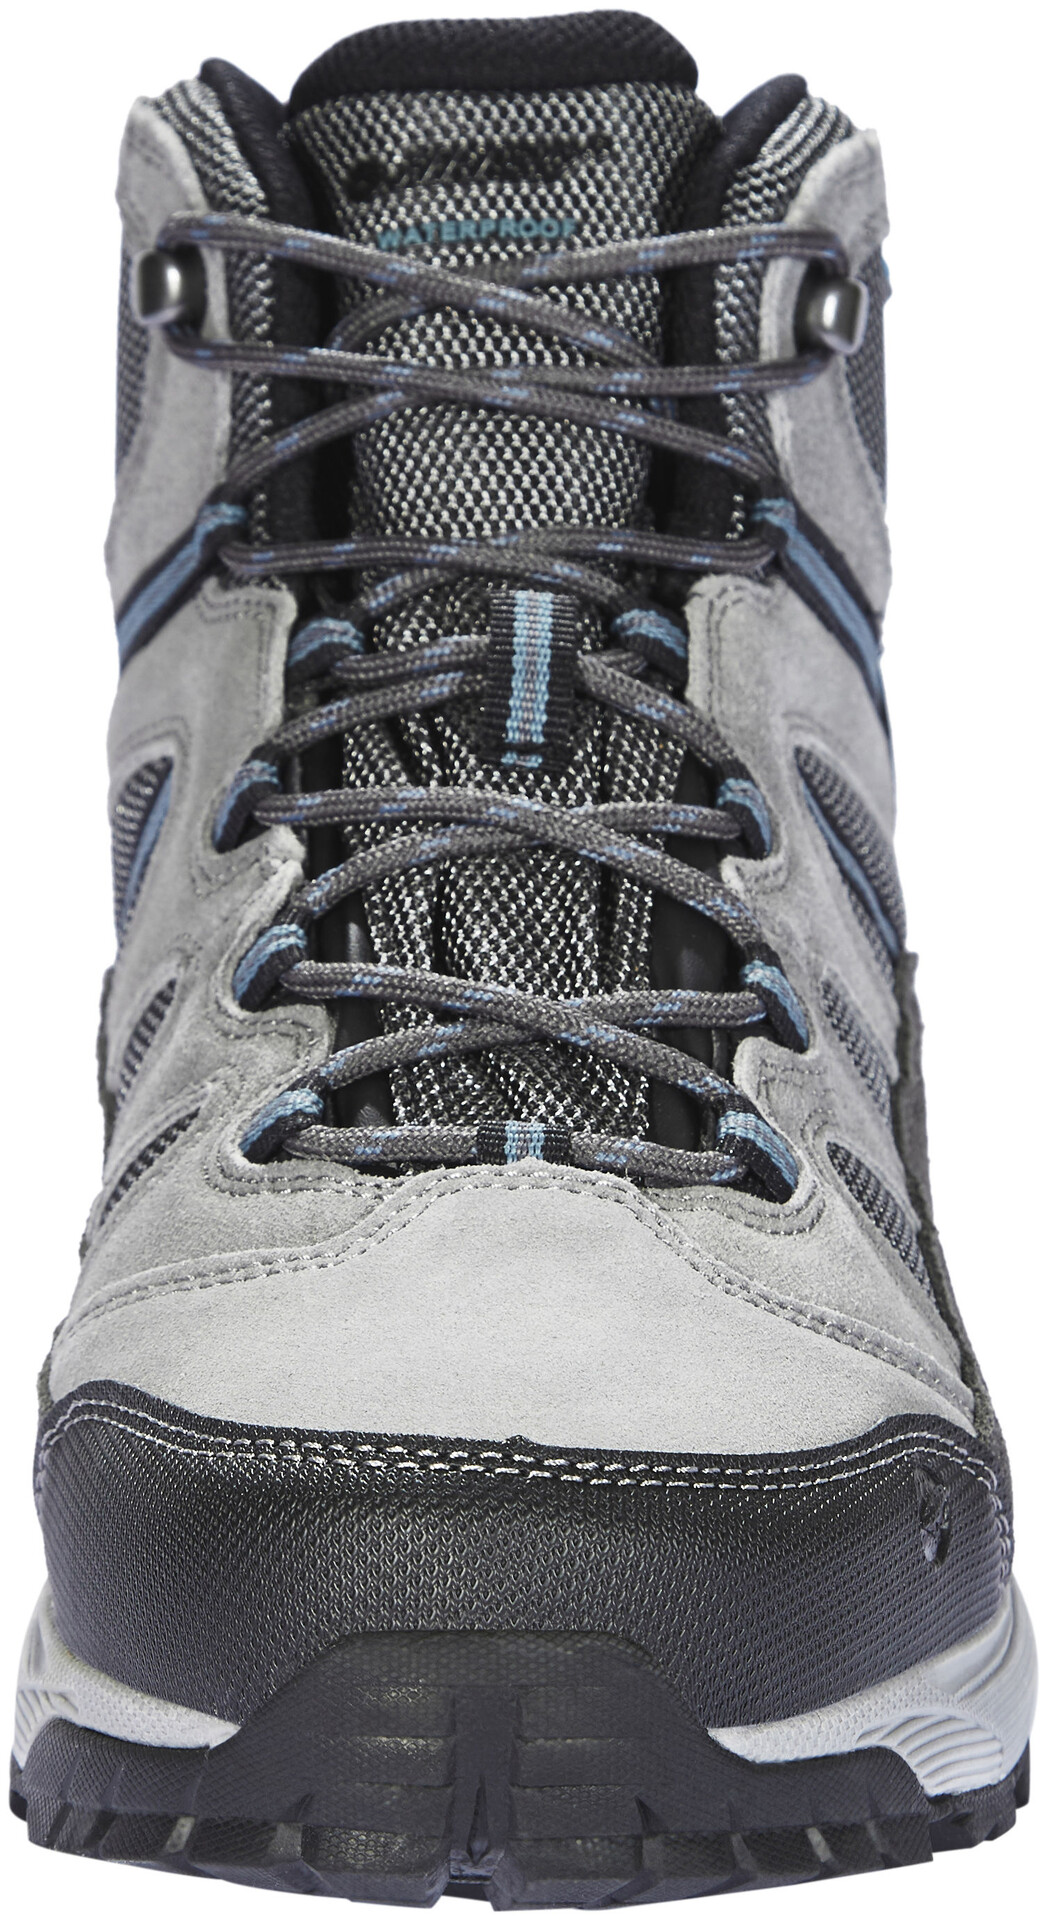 DEK Ghillie Up Trail Shoes Mens Synthetic Leather Trek Walking Outdoors Trainers